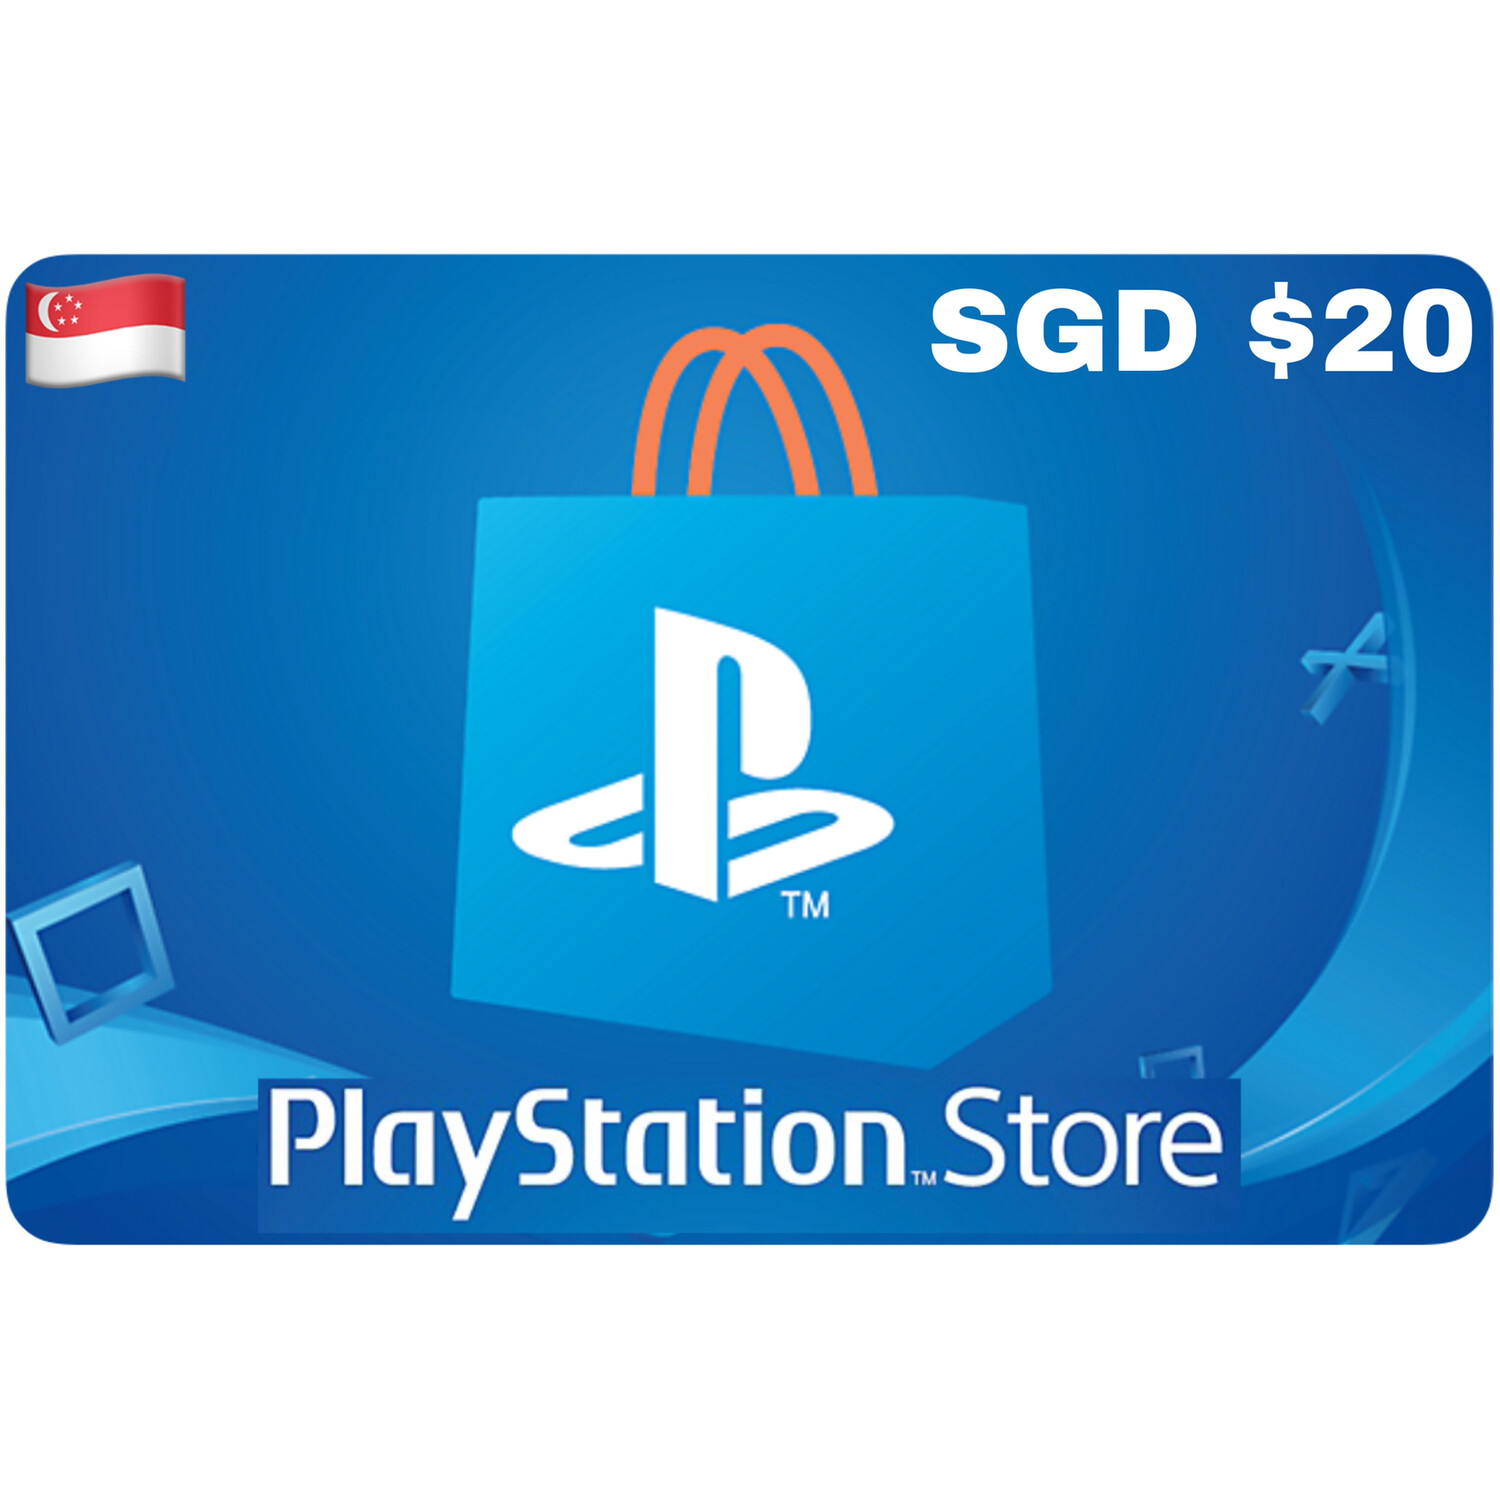 Playstation Store Gift Card Singapore SGD $20